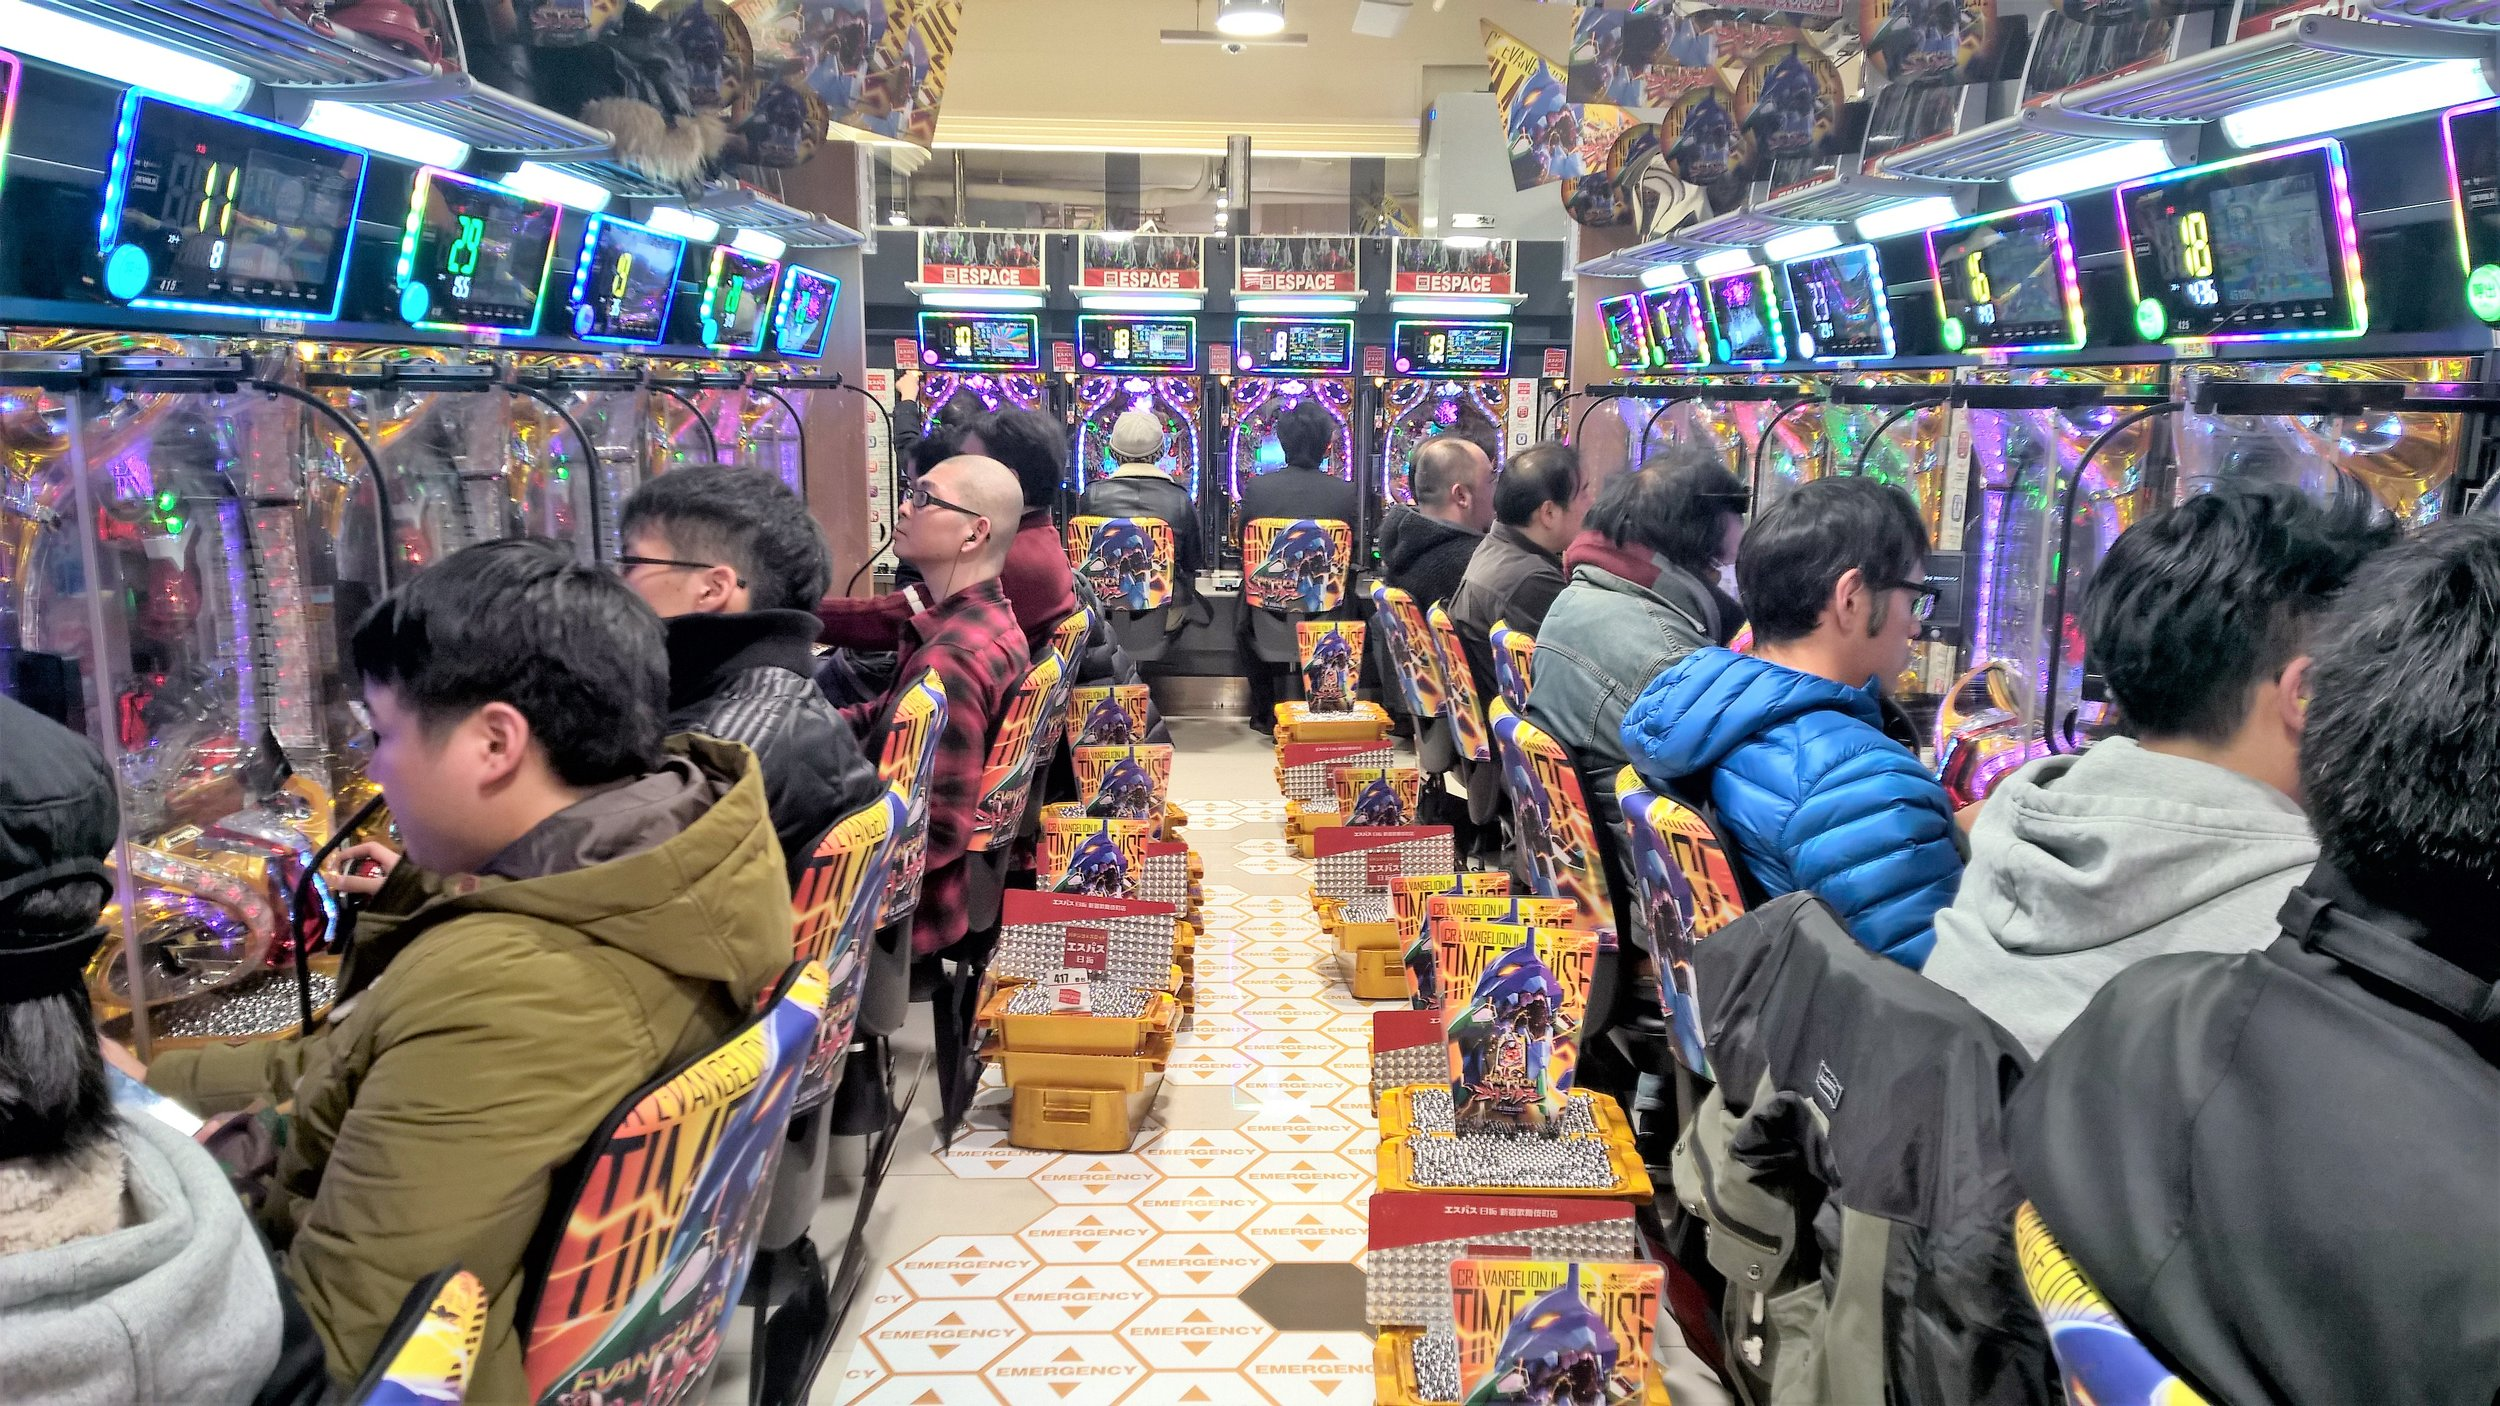 Pachinko parlors. - Pachinko (パチンコ) is a type of mechanical game which originates in Japan and is popular country-wide. It is used as a recreational arcade-style game, but also as a gambling device, comparable to a slot machine. Pachinko parlours are large and loud, reminiscent of a casino. We had many opportunities to visit these parlours, finding them in every city. They are easily identifiable for their bright lights and the noise. We never brought ourselves to try to play a game of pachinko, because the noise in these parlors was truly too overwhelming. We also ventured into gaming arcades in Osaka. These arcades are often entire buildings, filled with every game imaginable. We watched some pro gamers win big, and lost ourselves some yen, but worth it for the thrills.